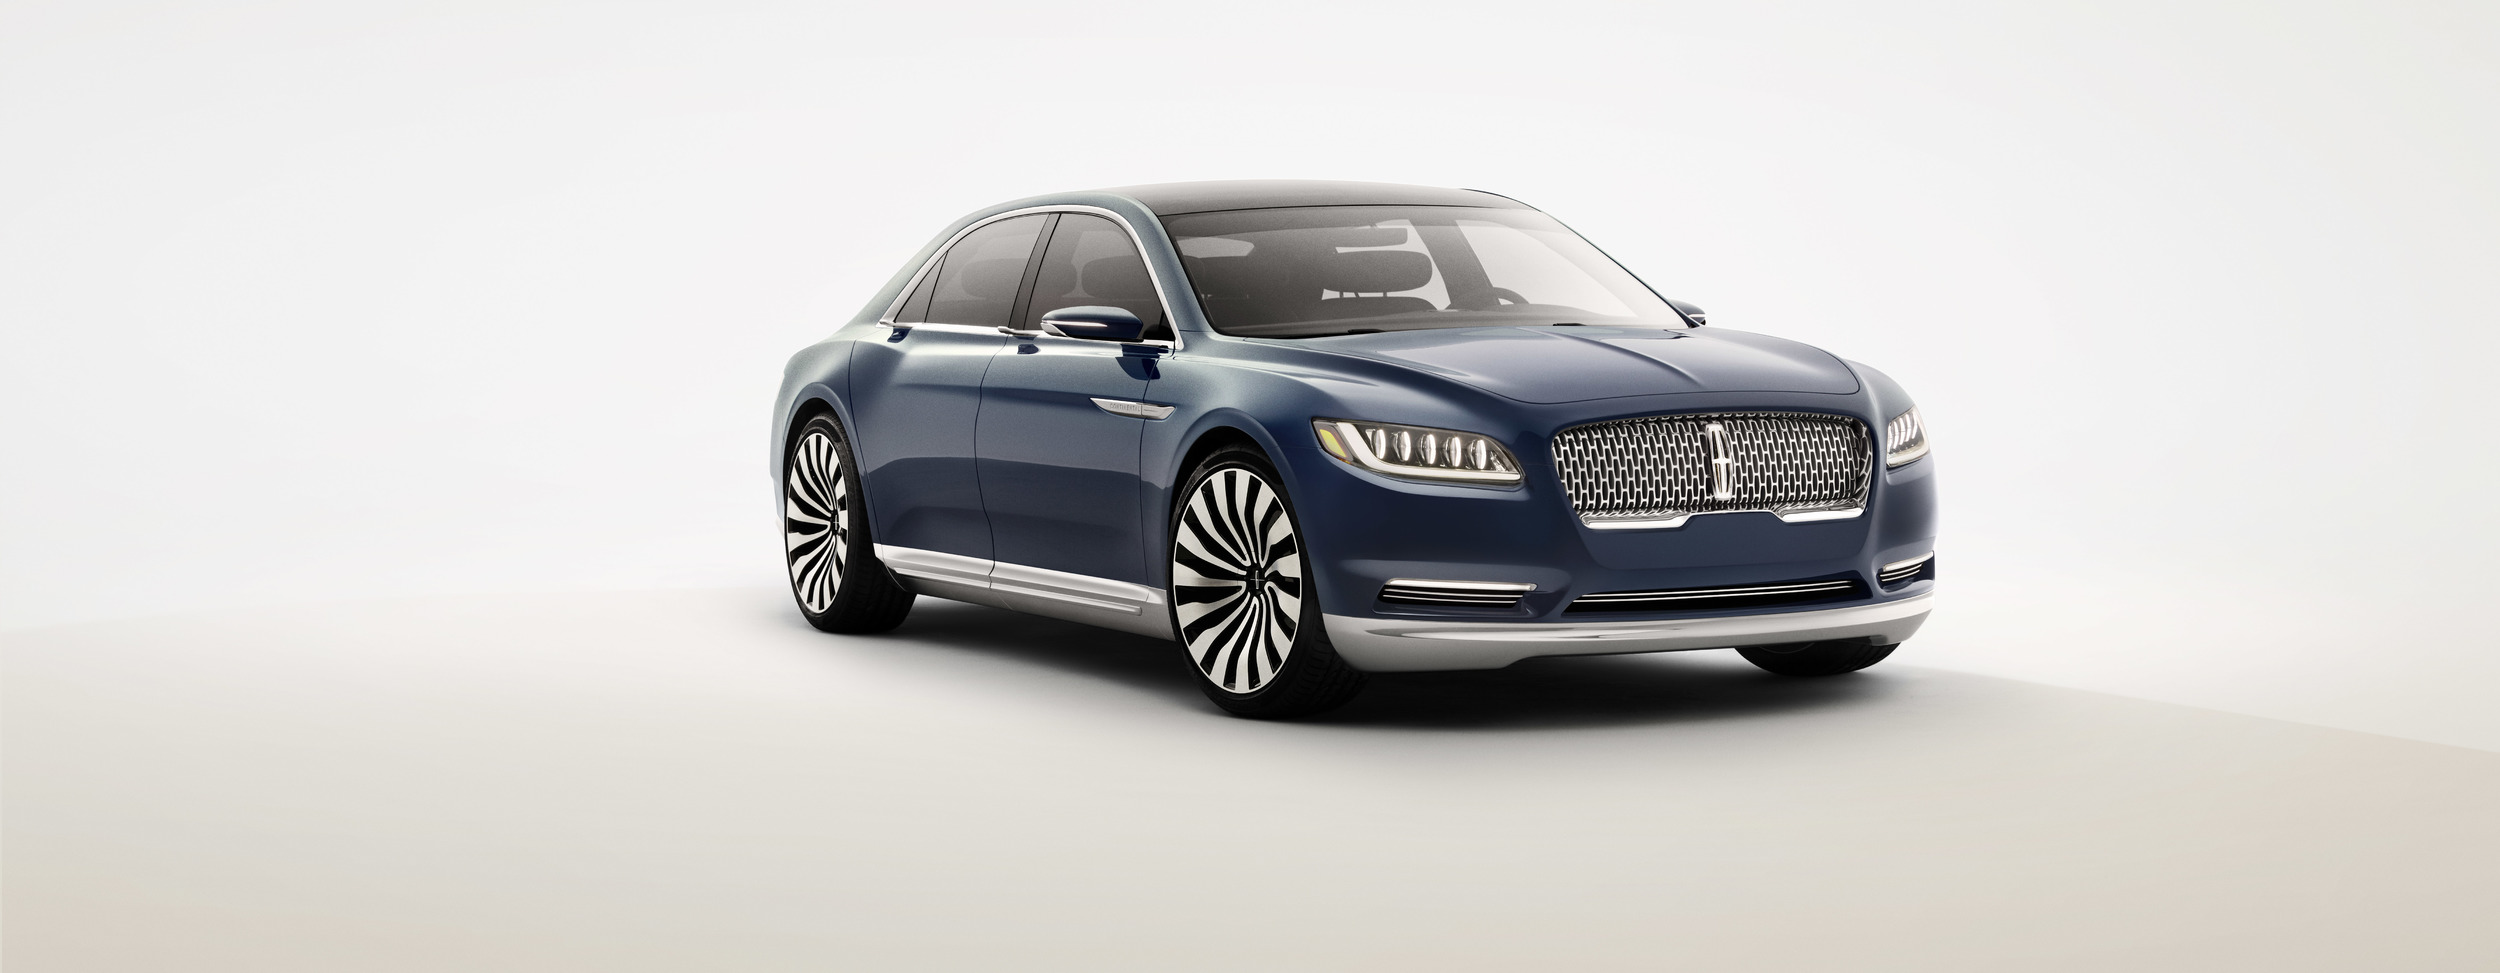 lincolncontinentalconcept 04 front 1